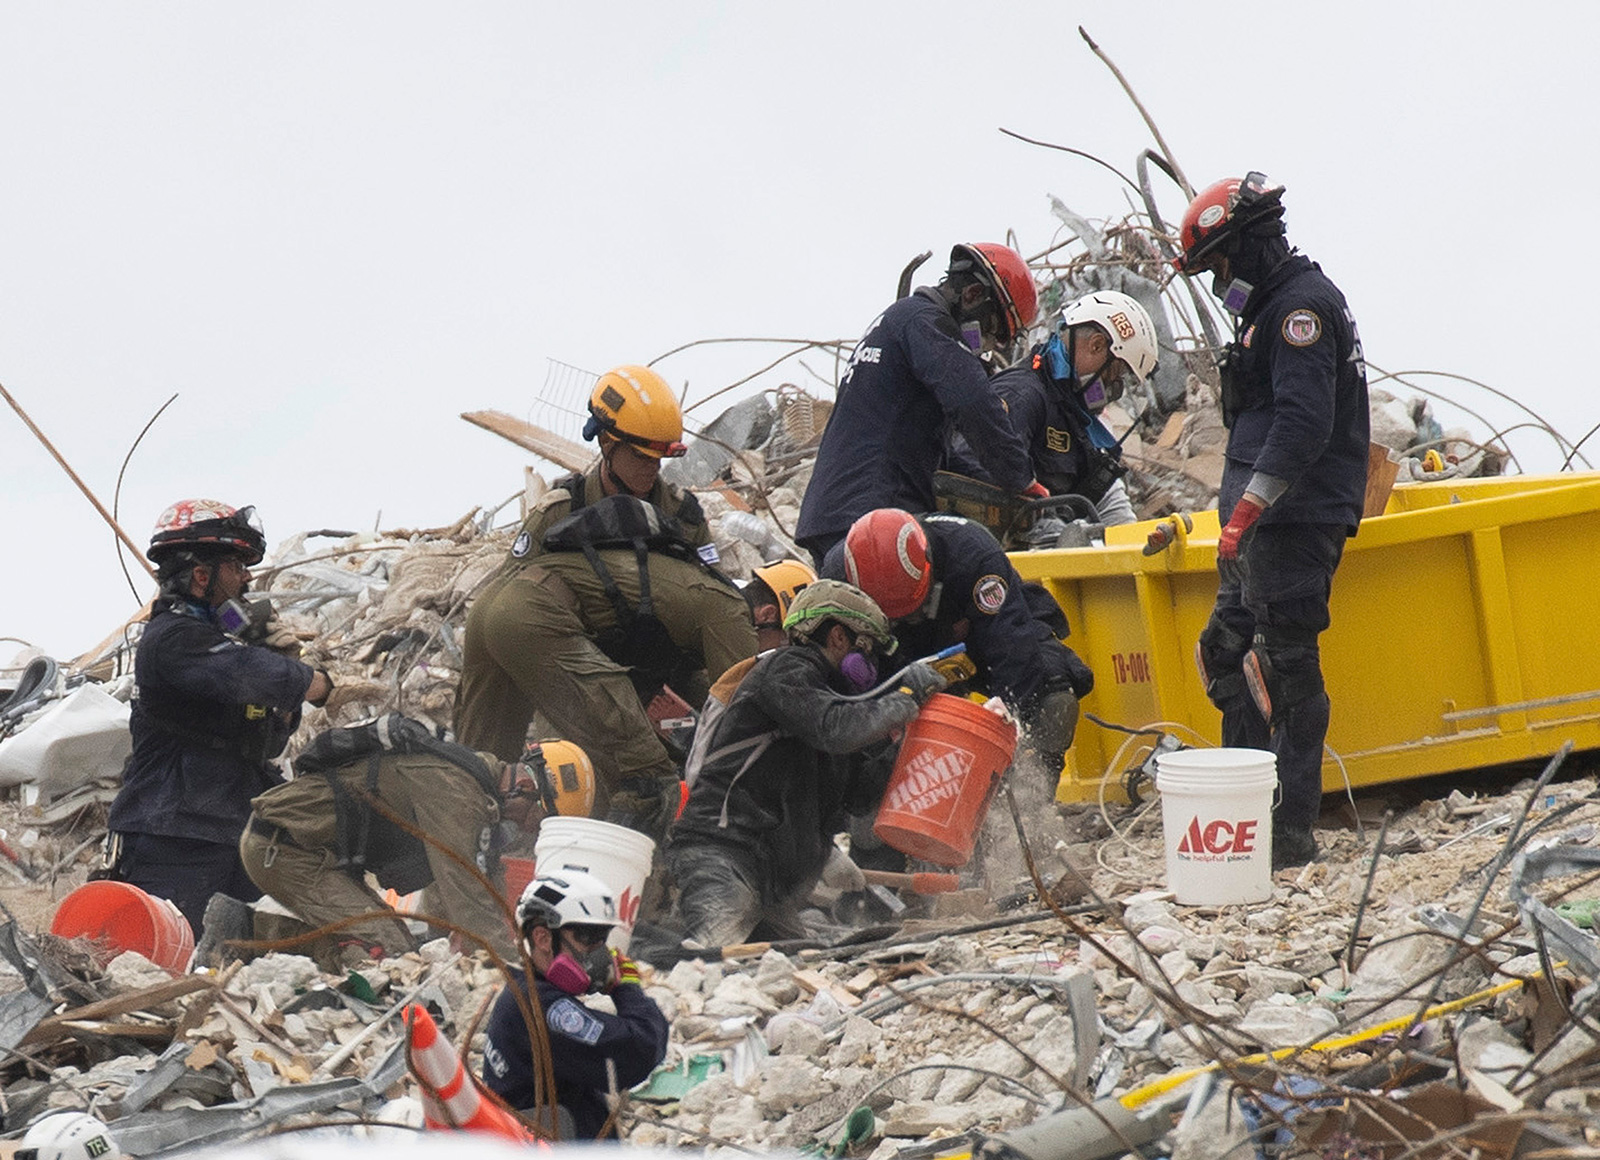 Search and Rescue teams look for possible survivors and to recover remains in the partially collapsed 12-story Champlain Towers South condo building on June 29 in Surfside, Florida.